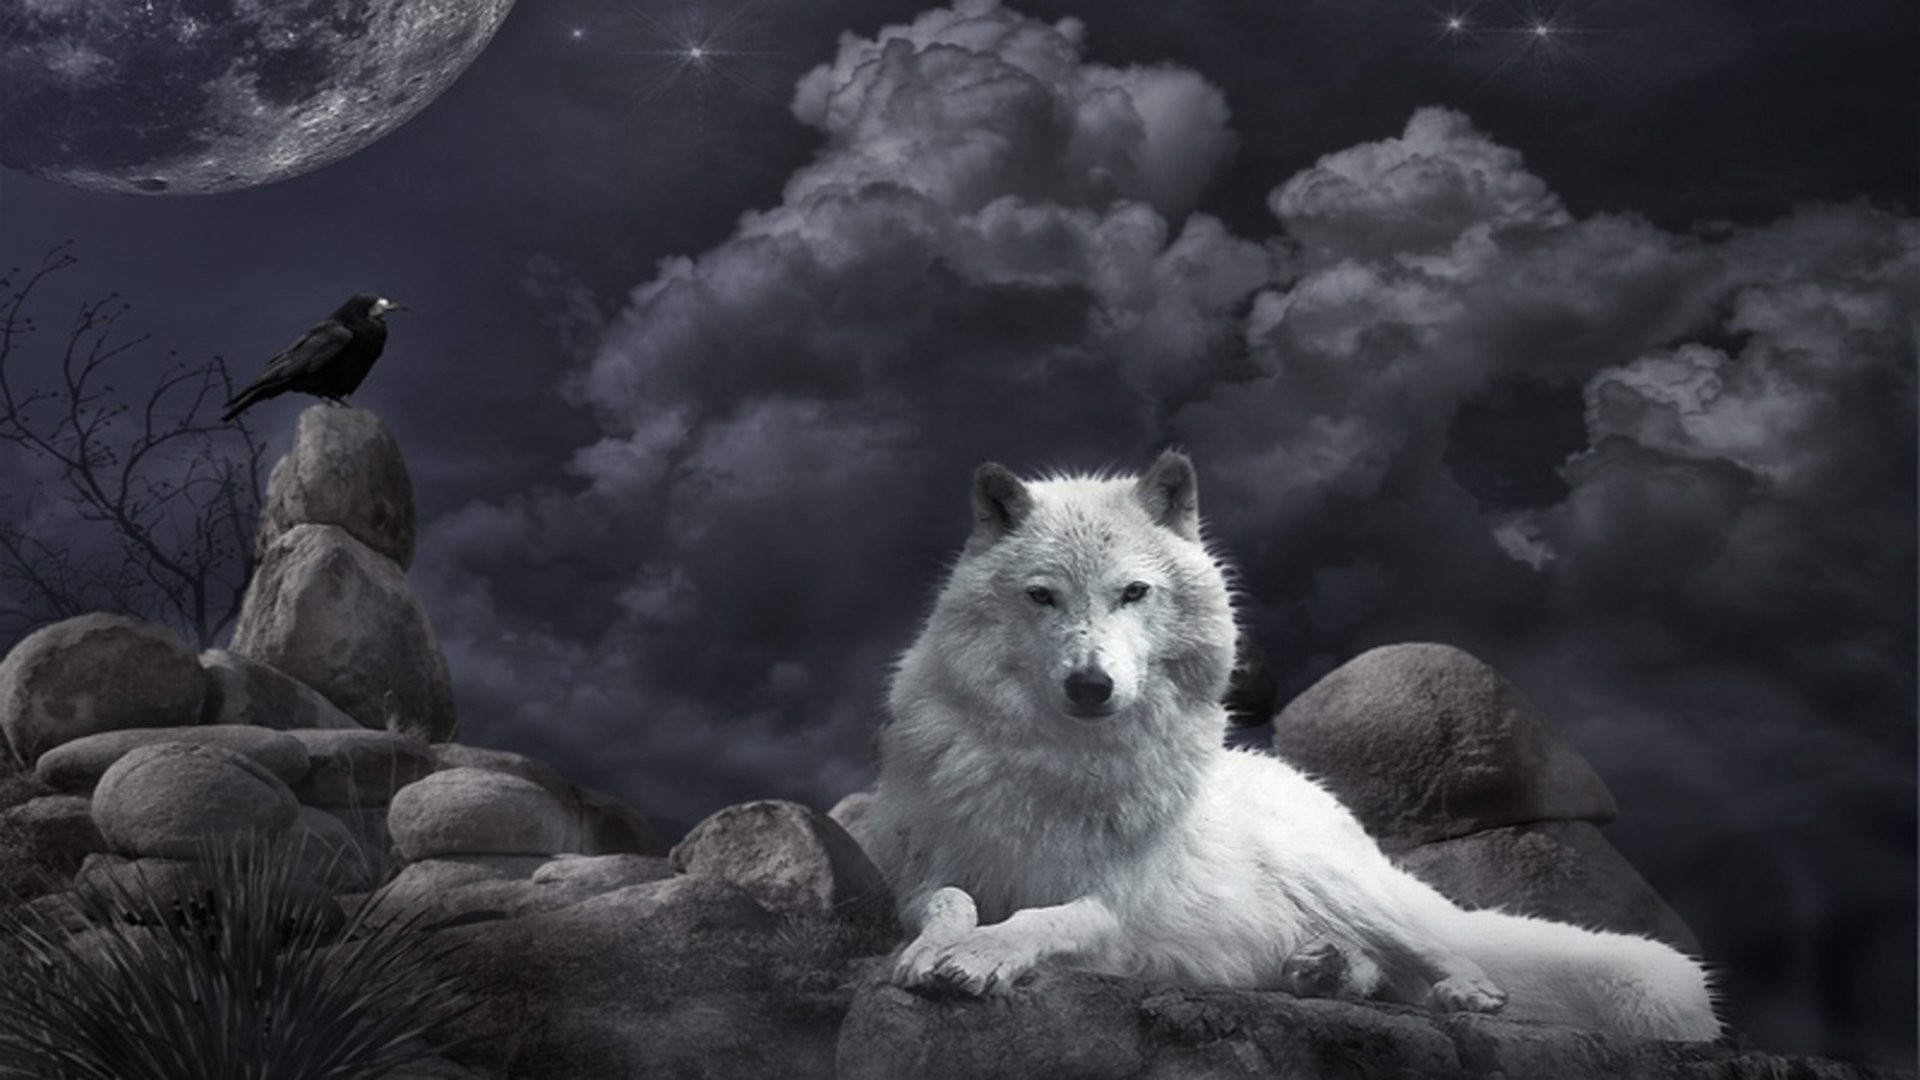 1920x1200 Background: High Resolution Cool Wolves Wallpapers, by Shondra Shrout